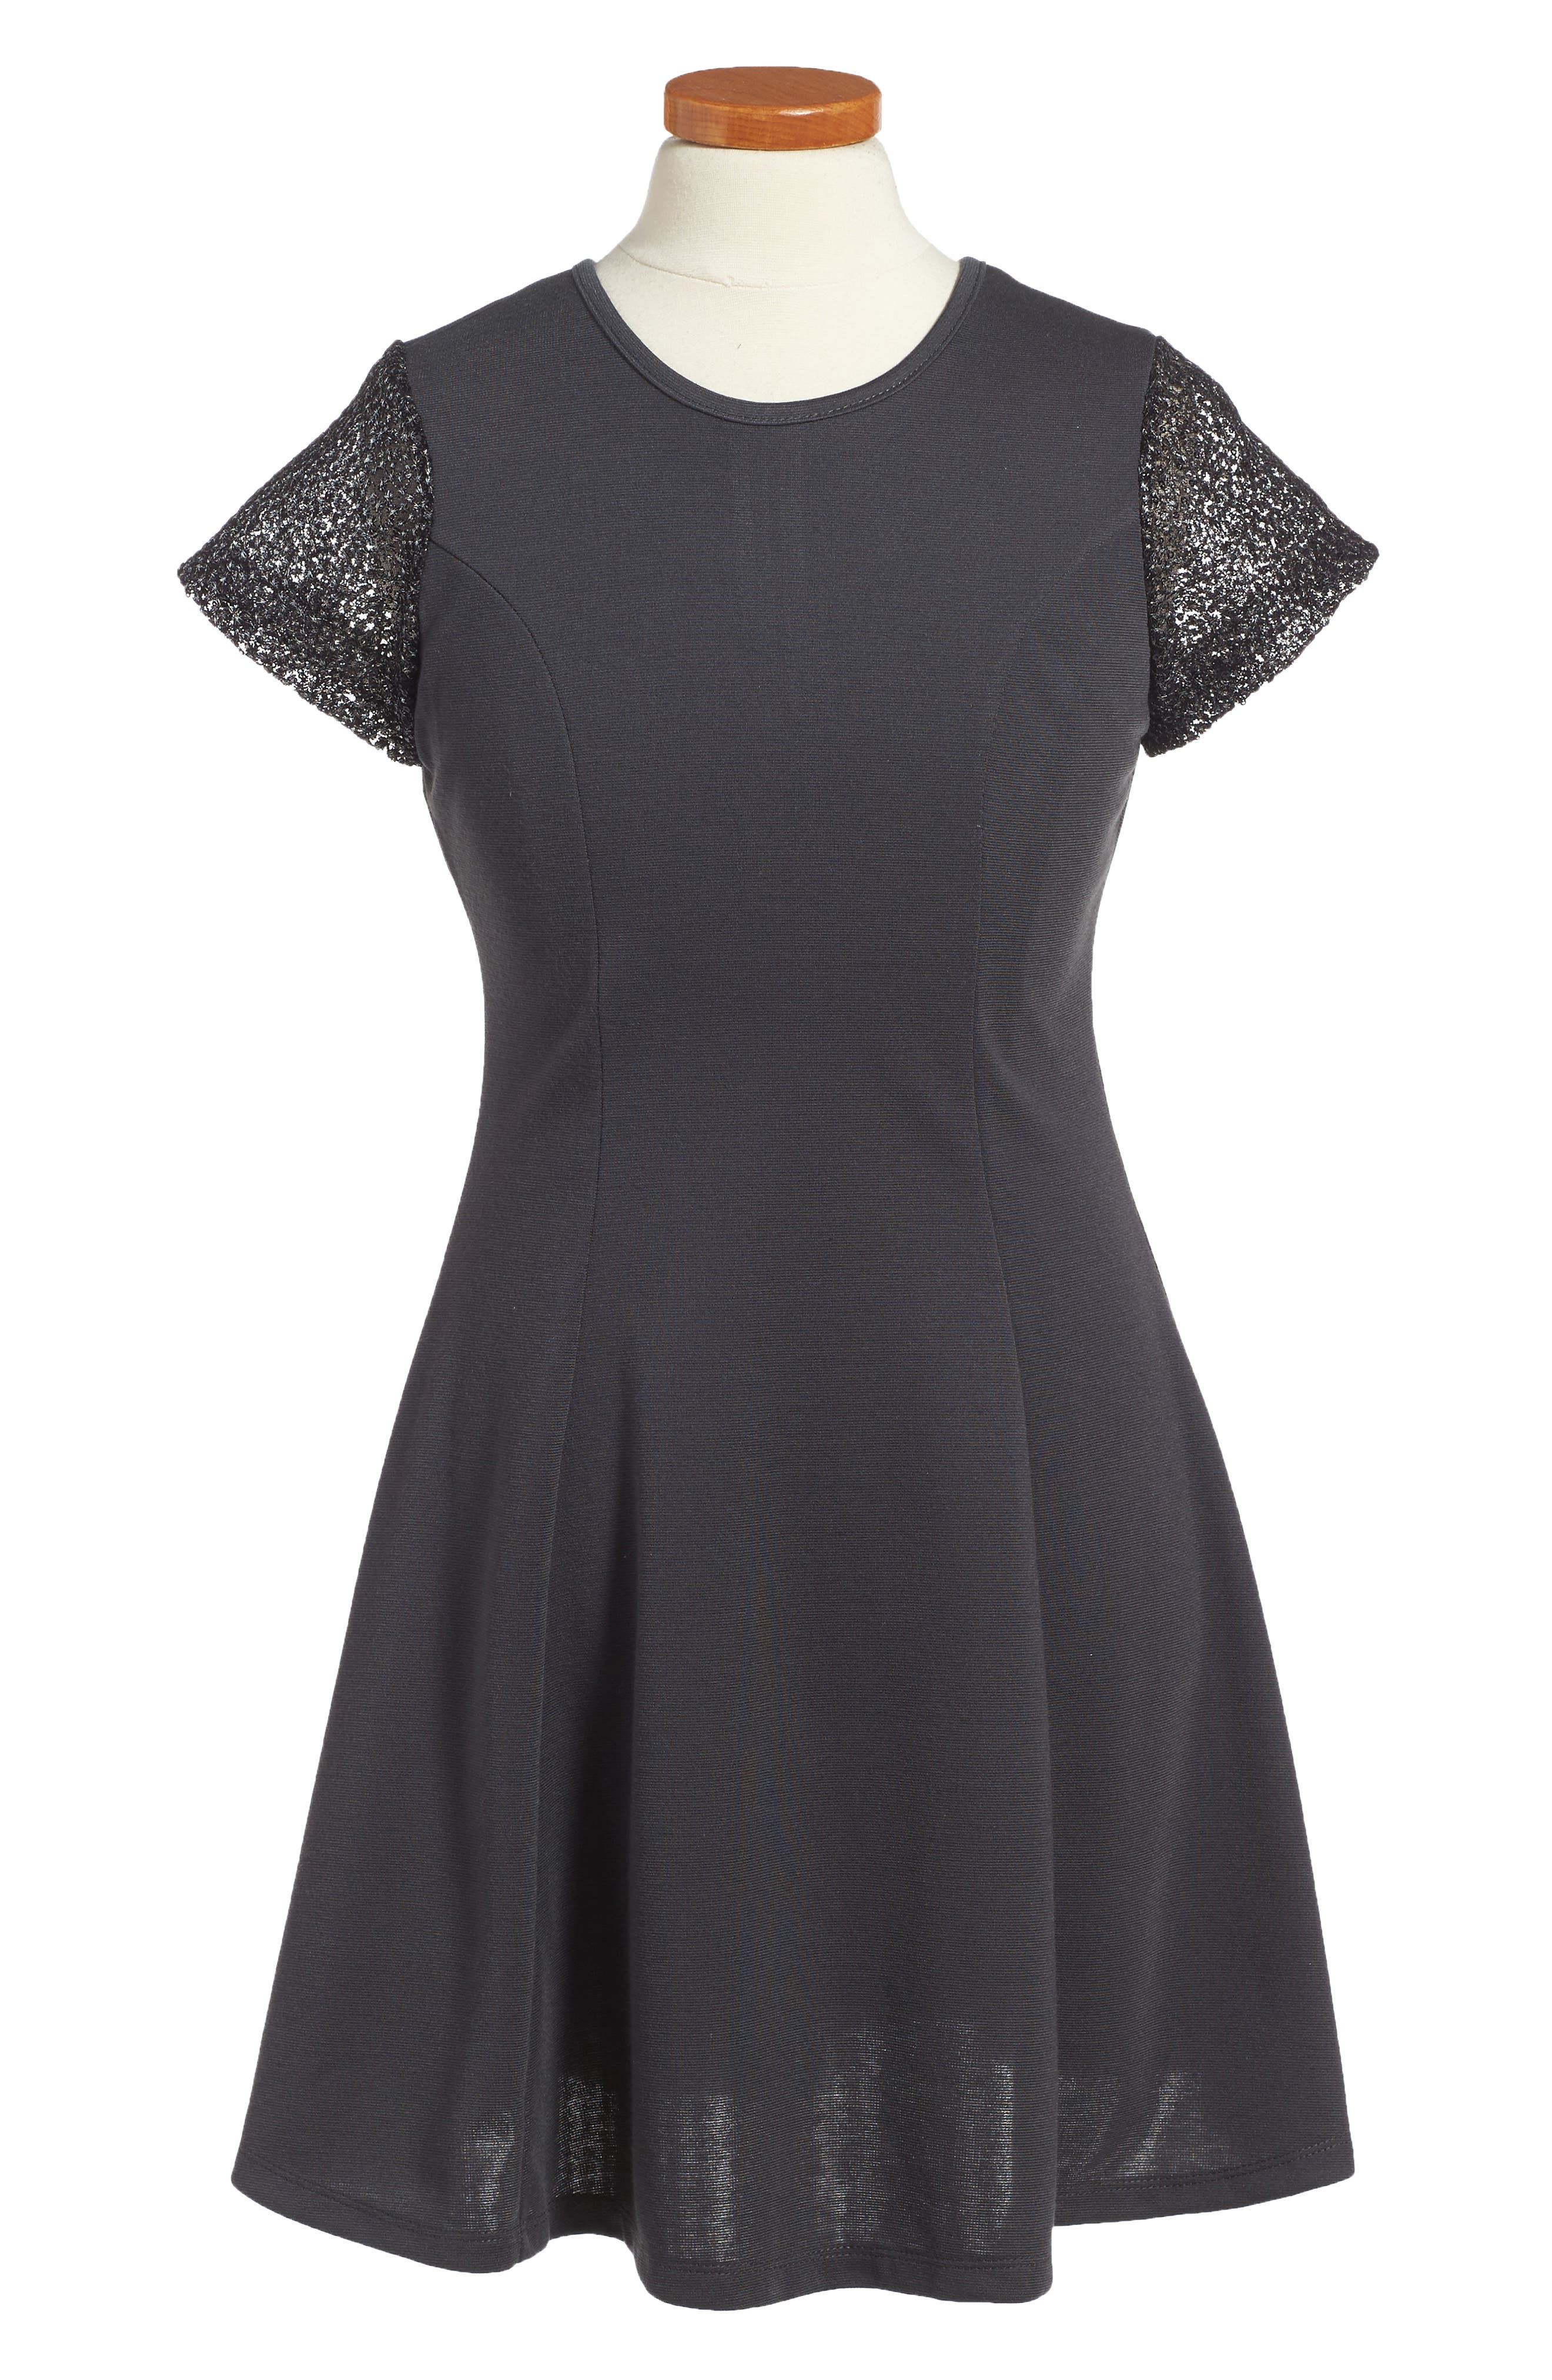 Penelope Tree Priscilla Mesh Sleeve Dress (Big Girls)